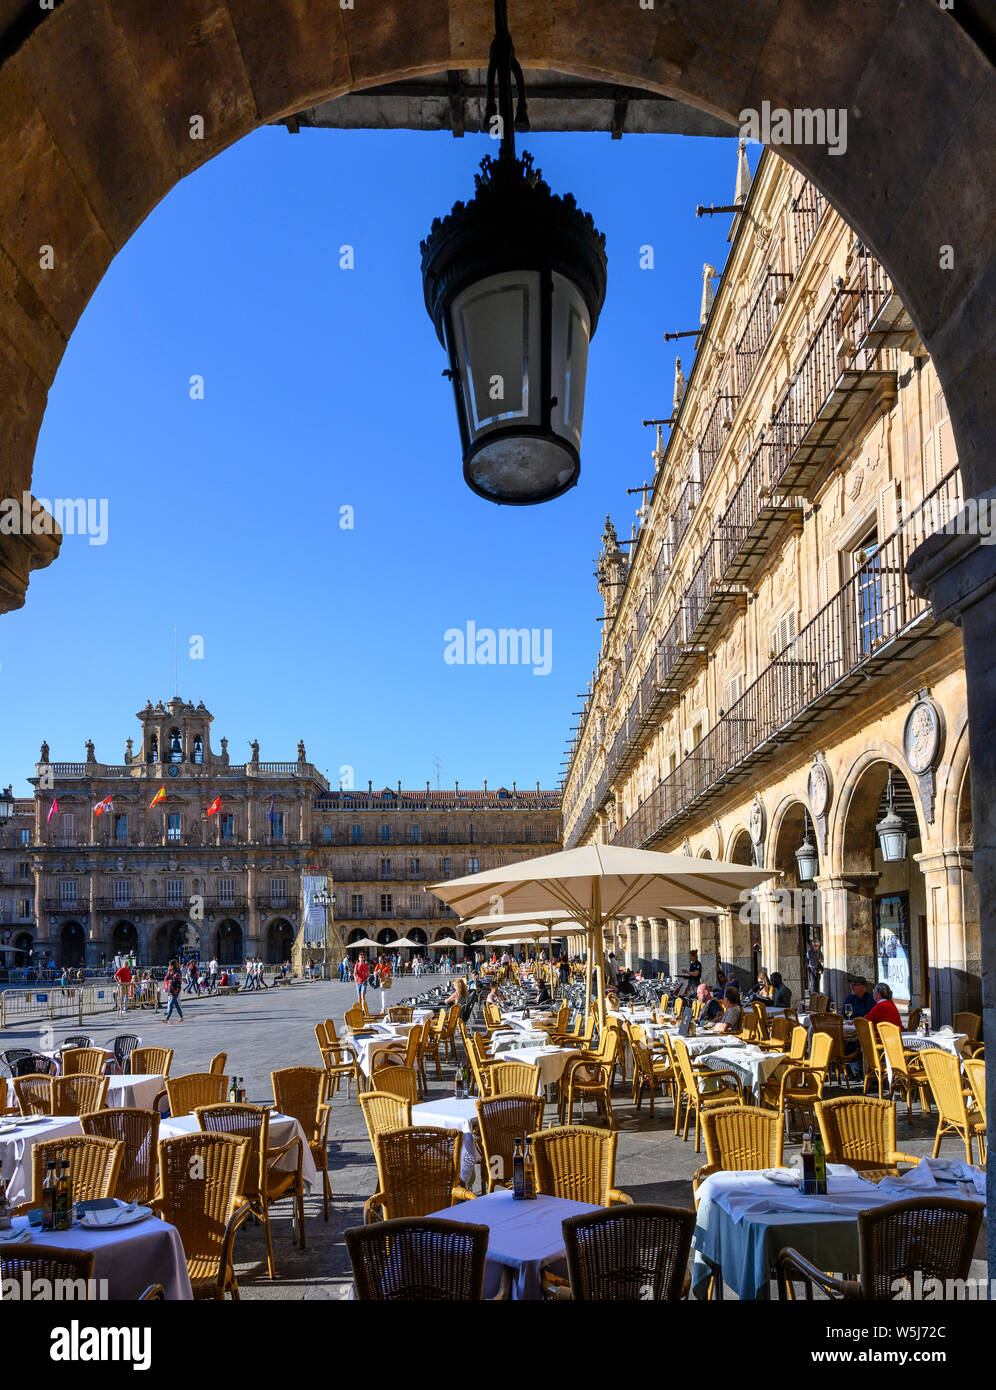 The Baroque Plaza Mayor in the center of Salamanca, Spain. Stock Photo